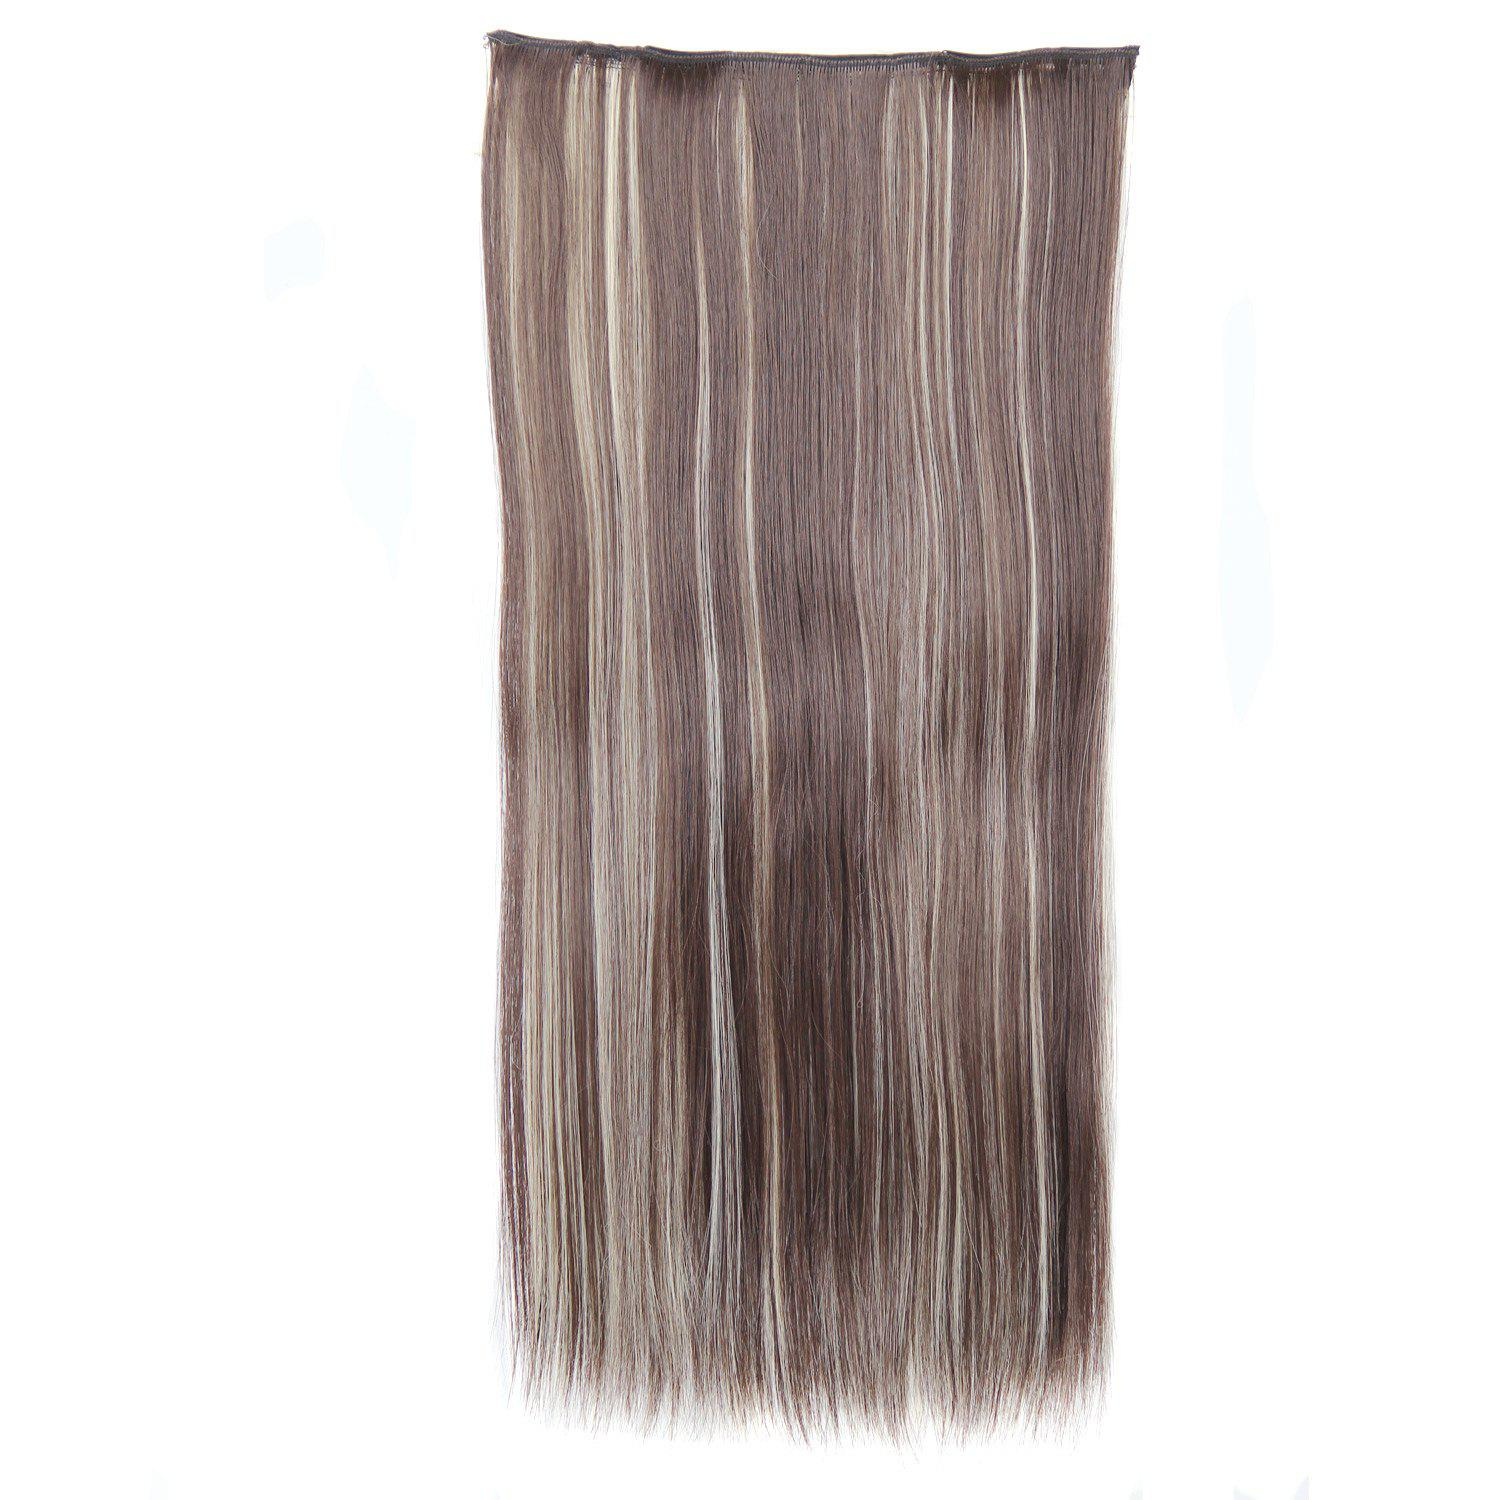 Trendy Heat Resistant Synthetic Clip-In Mixed Color Long Straight Women's Hair Extension